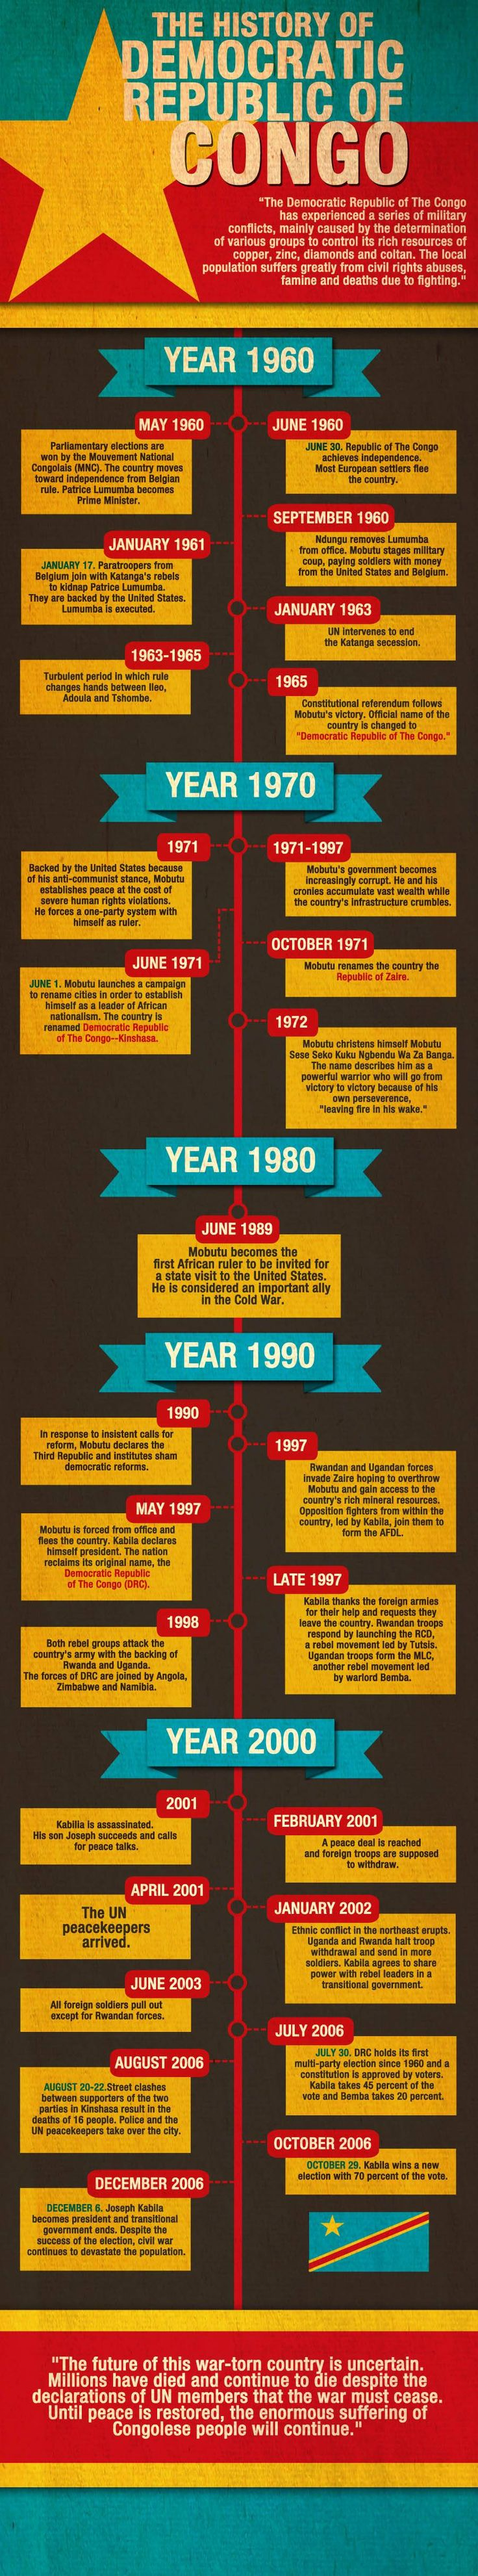 History of the Democratic Republic of Congo #infographic #war #kabila